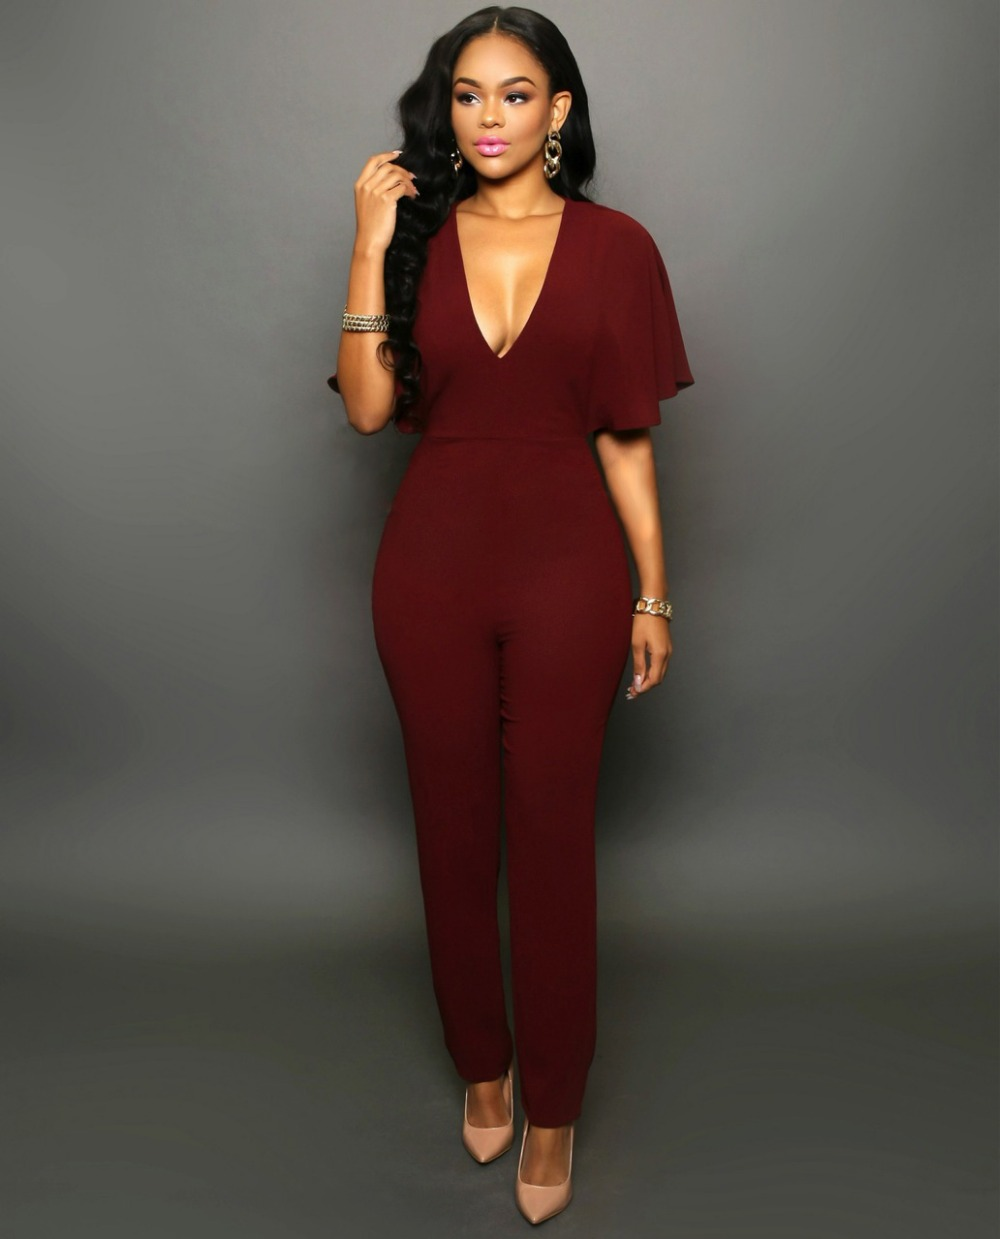 c531bf6dd726 V Neck Half Sleeve Ankle Length Jumpsuits-in Jumpsuits from Women s  Clothing   Accessories